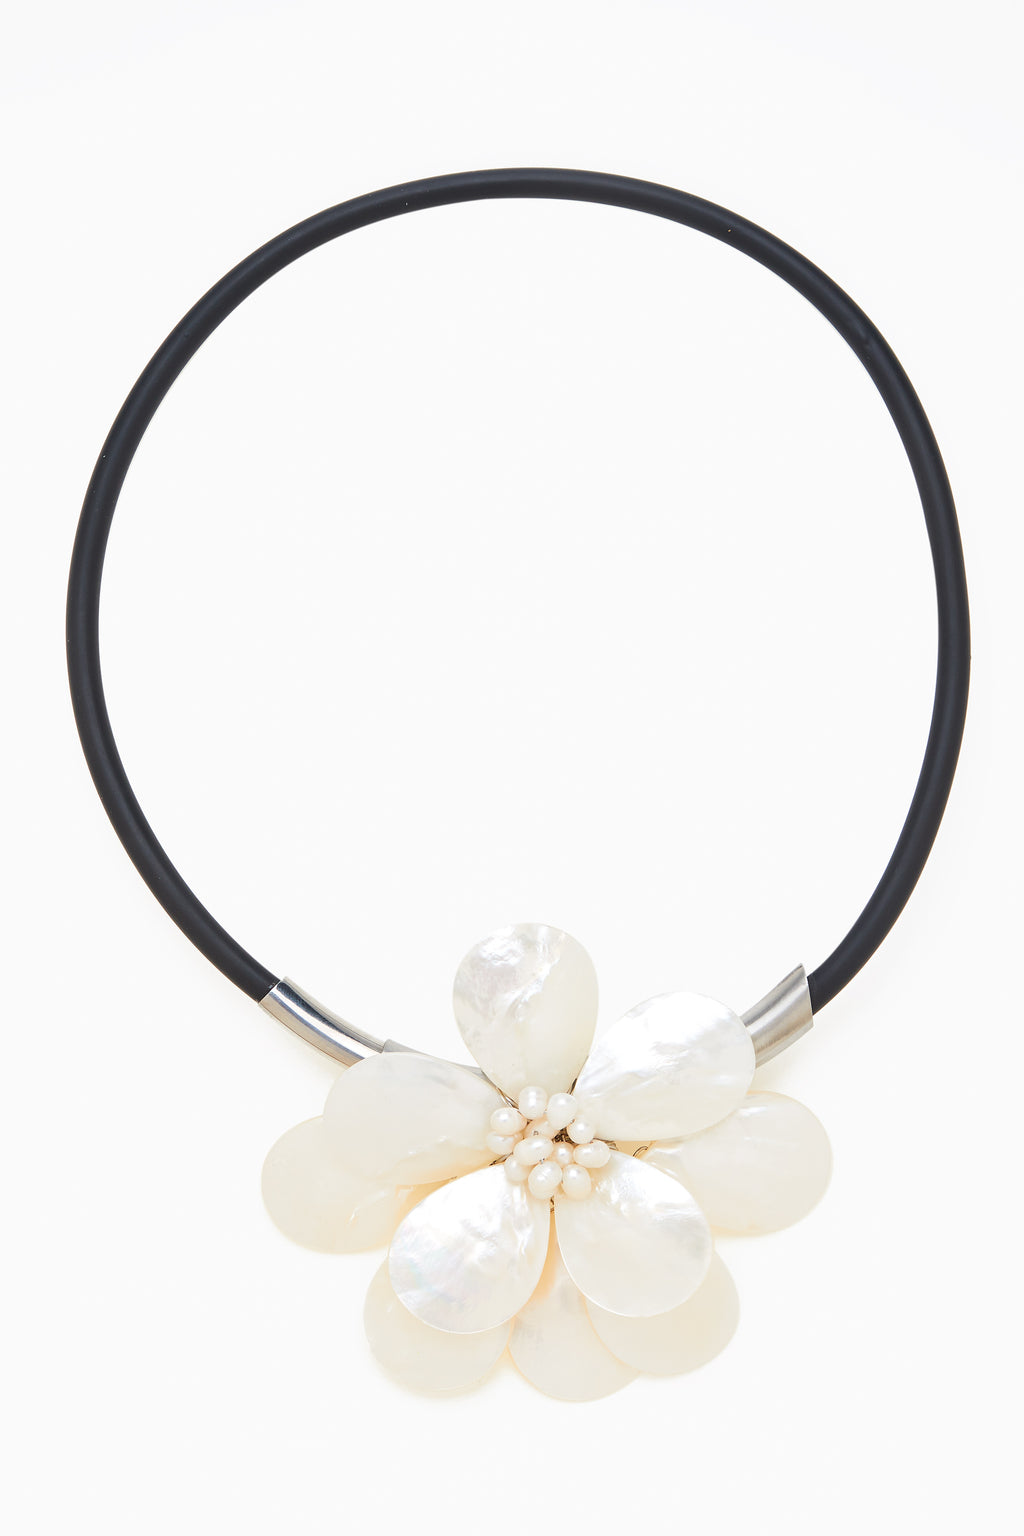 Large White Mother of Pearl Flower Petals on Black Magnetic Neck Ring